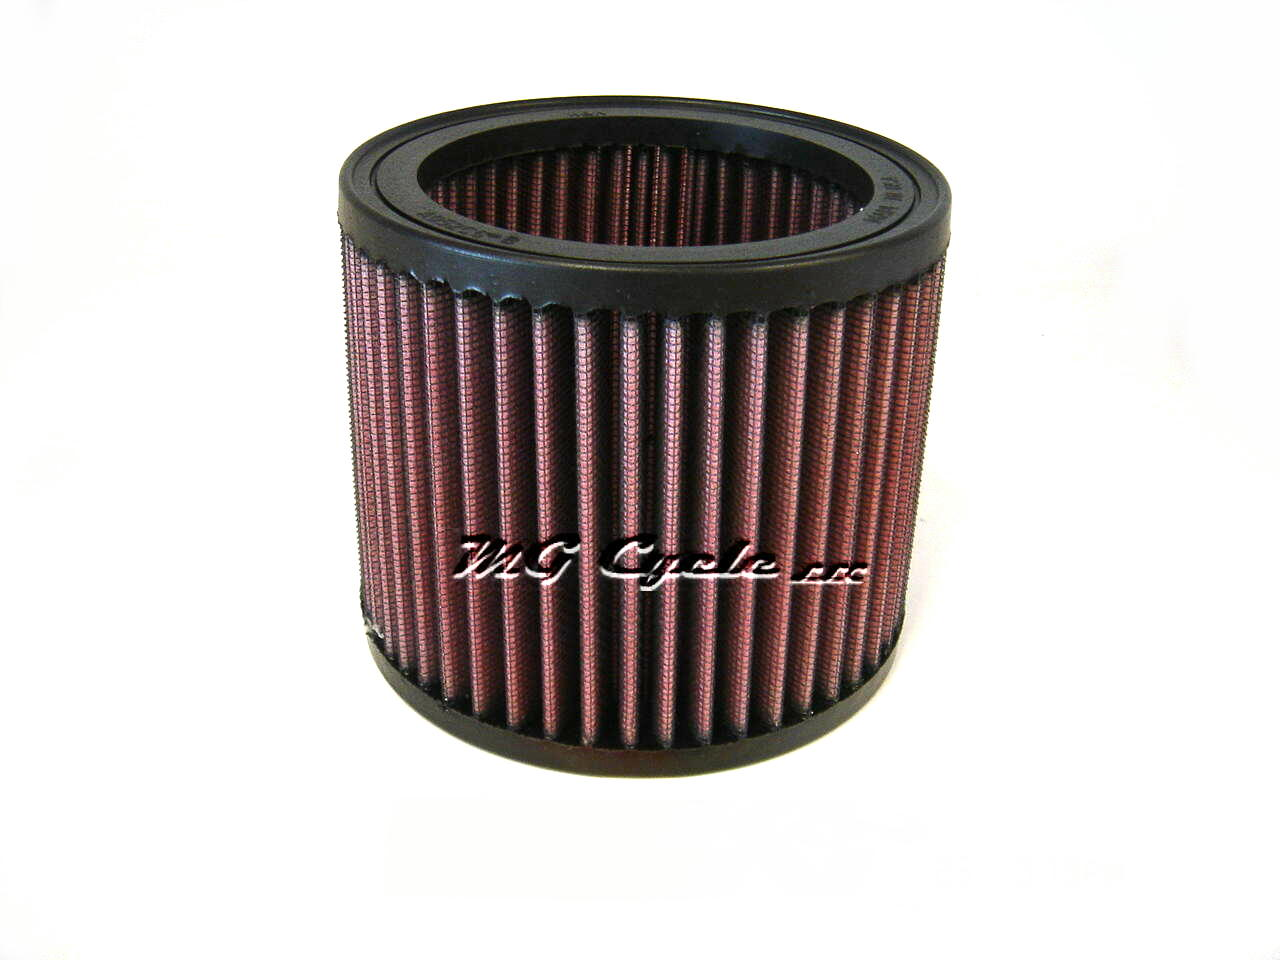 K&N air filter for Norge1200, Breva1100, 1200 Sport